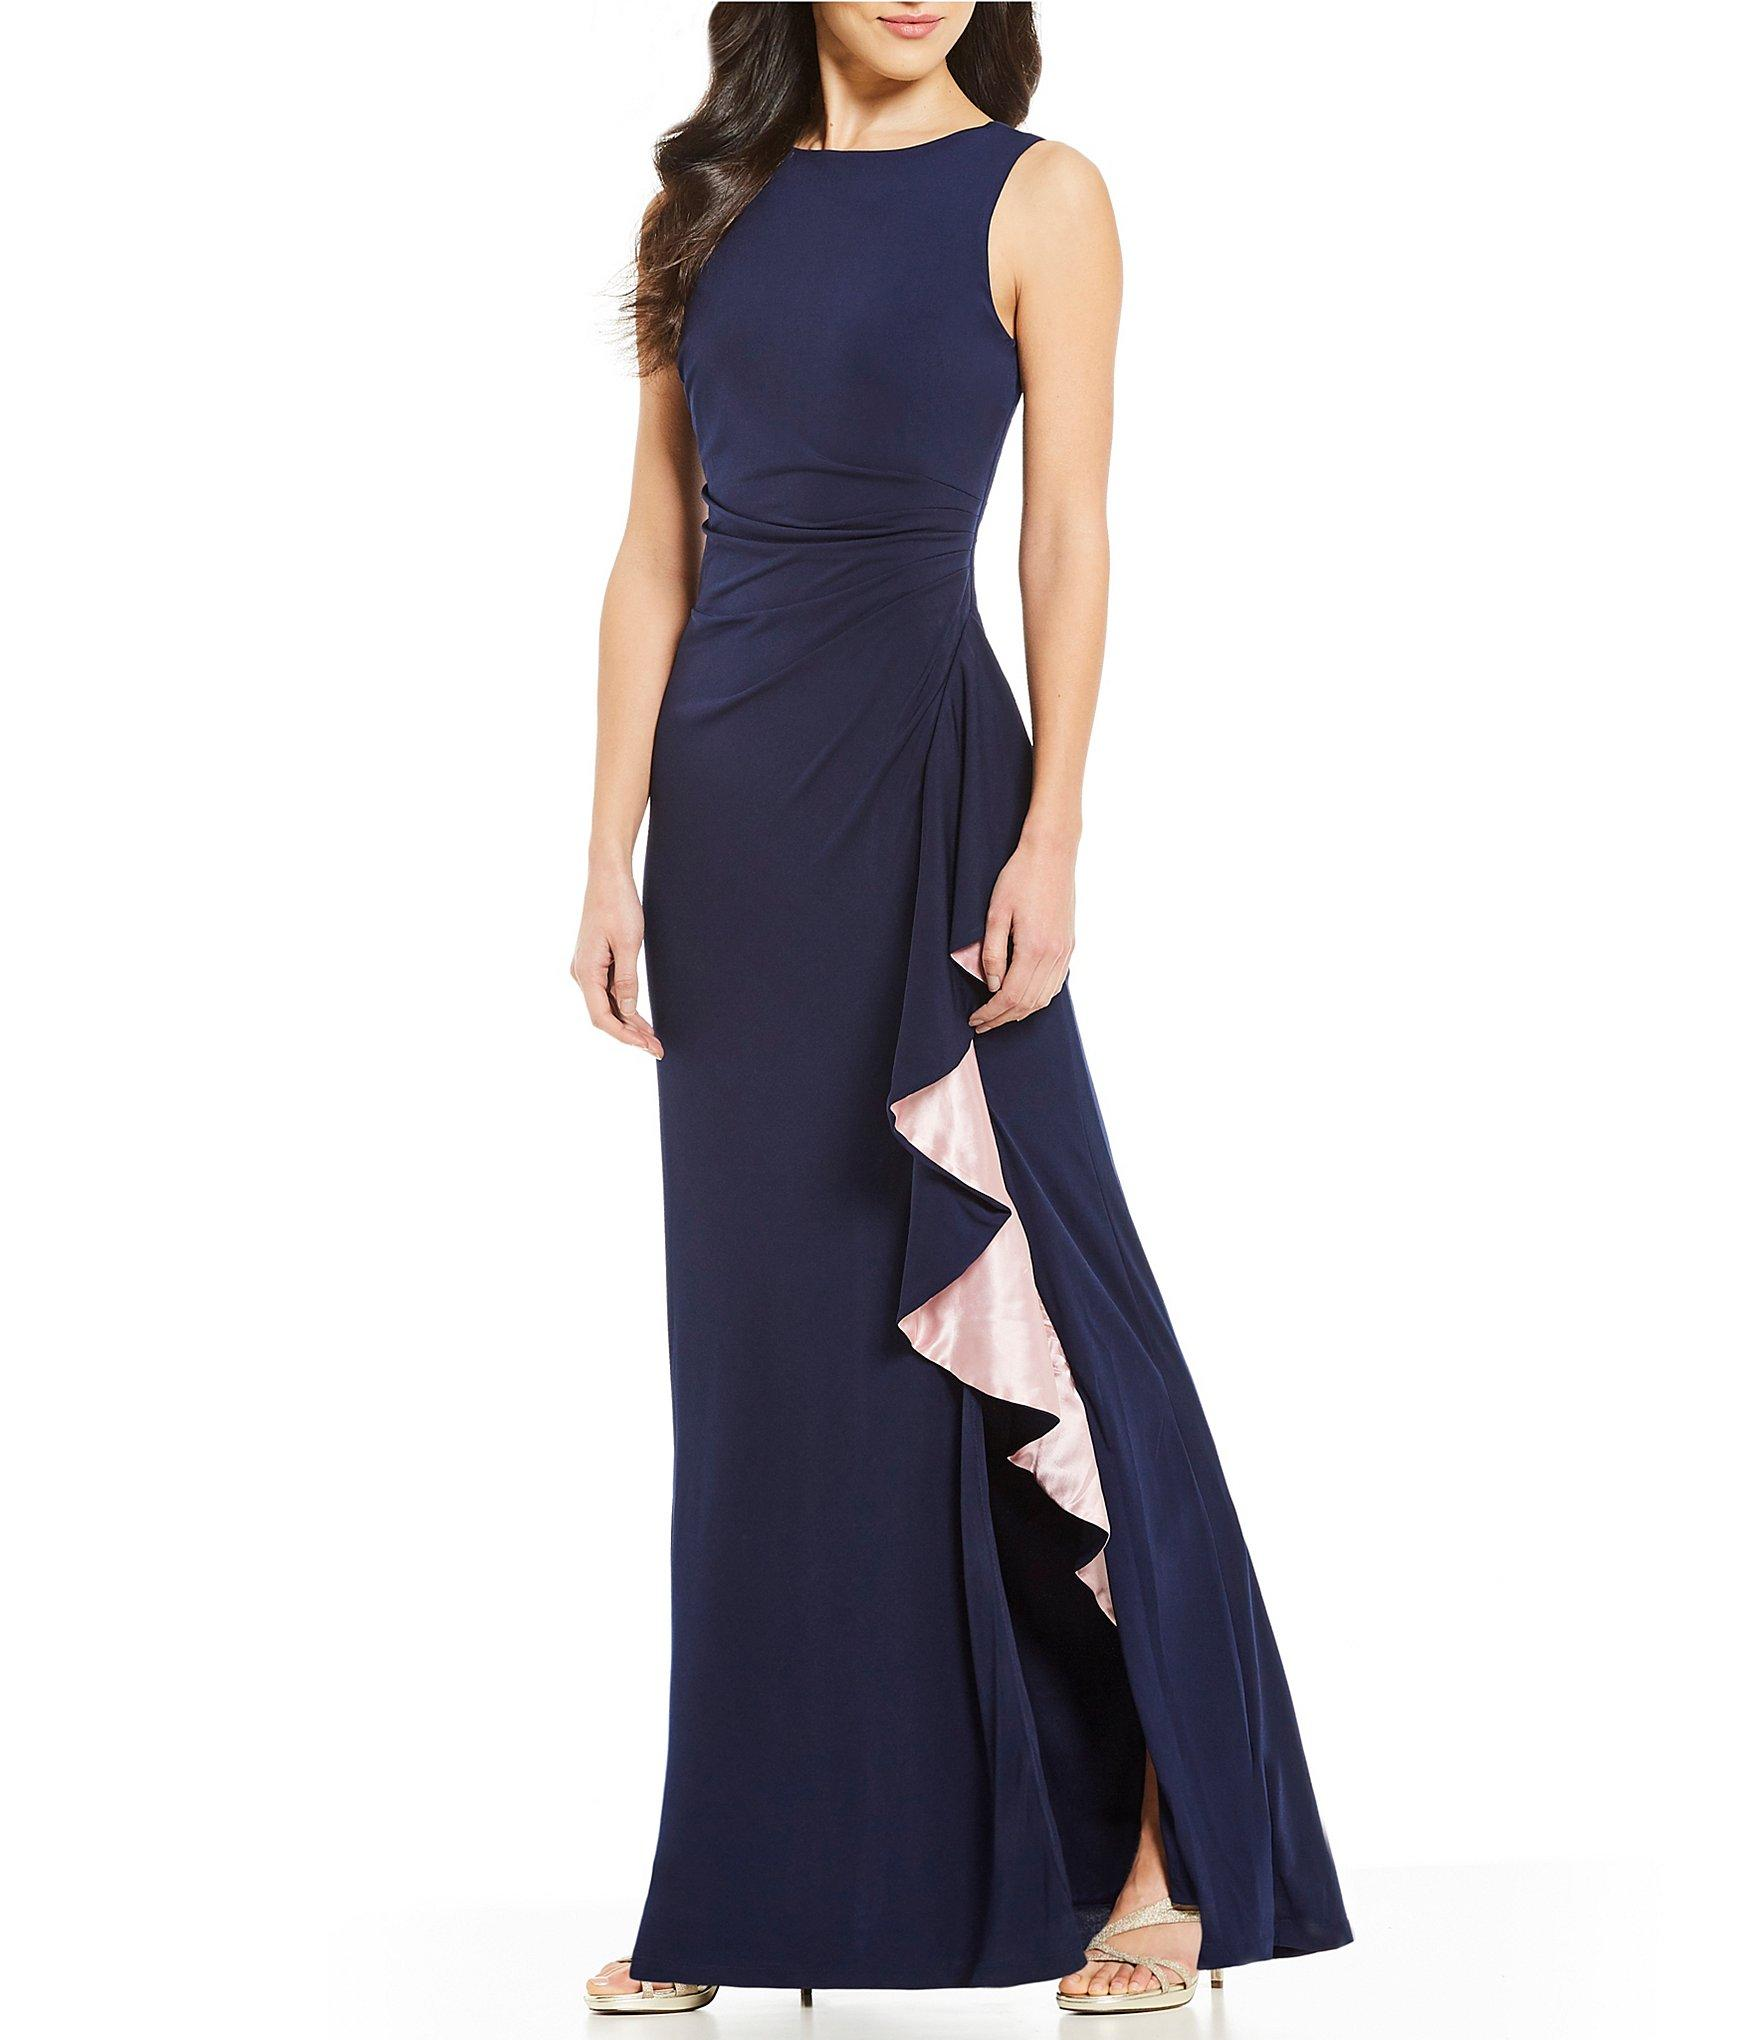 49b74ac2a57 Marina - Blue Sleeveless Two-toned Ruffle Cascade Gown - Lyst. View  fullscreen